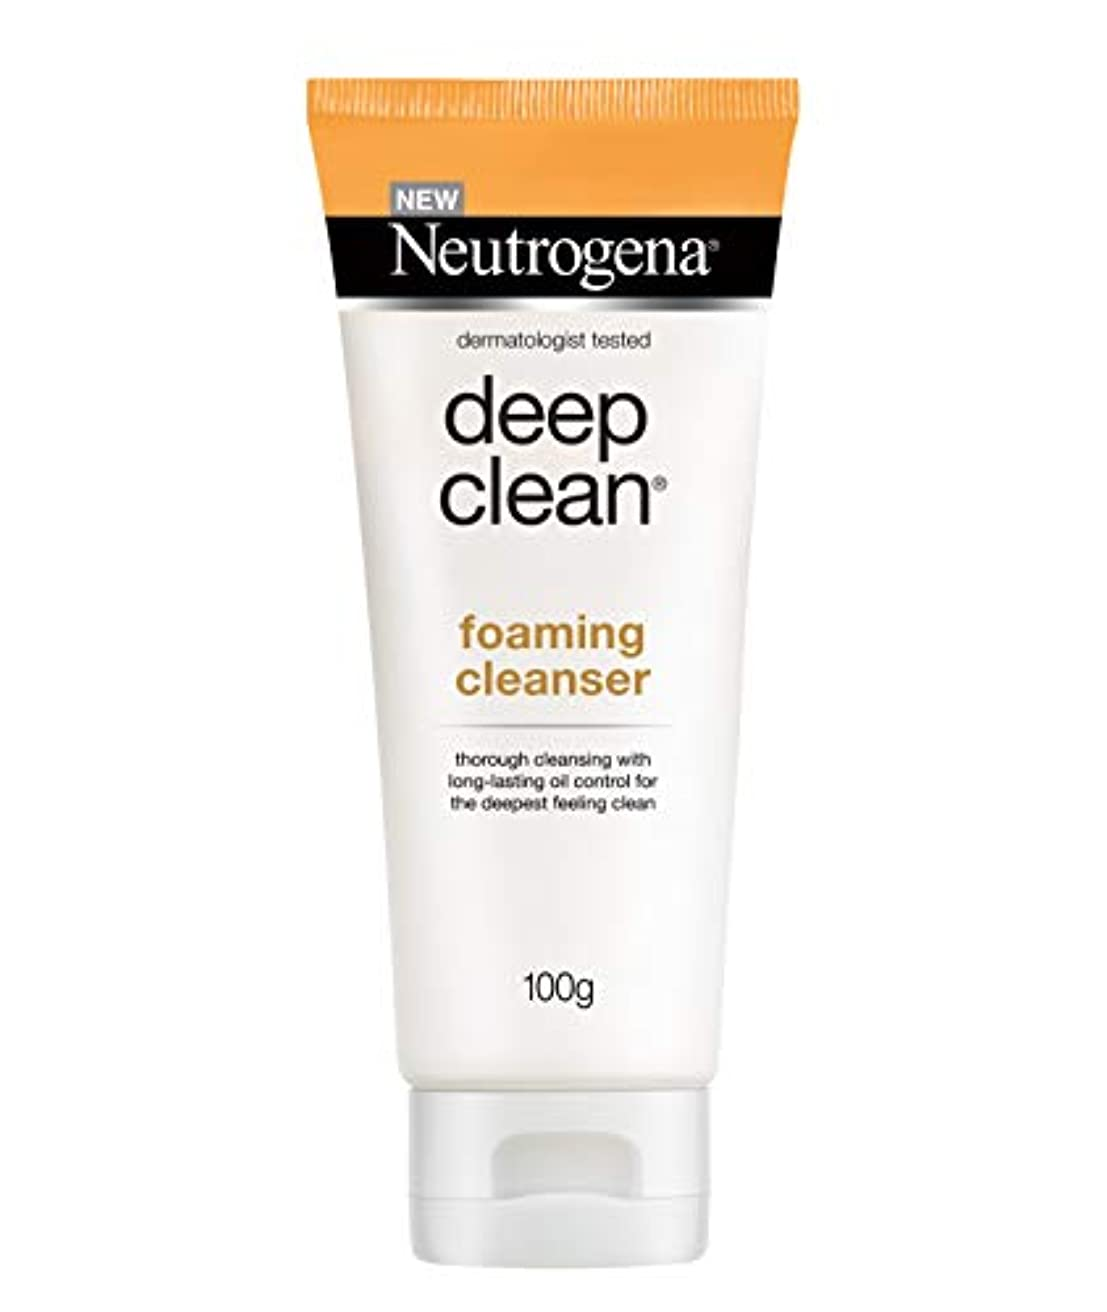 退屈なミリメートル解任Neutrogena Deep Clean Foaming Cleanser, 100g